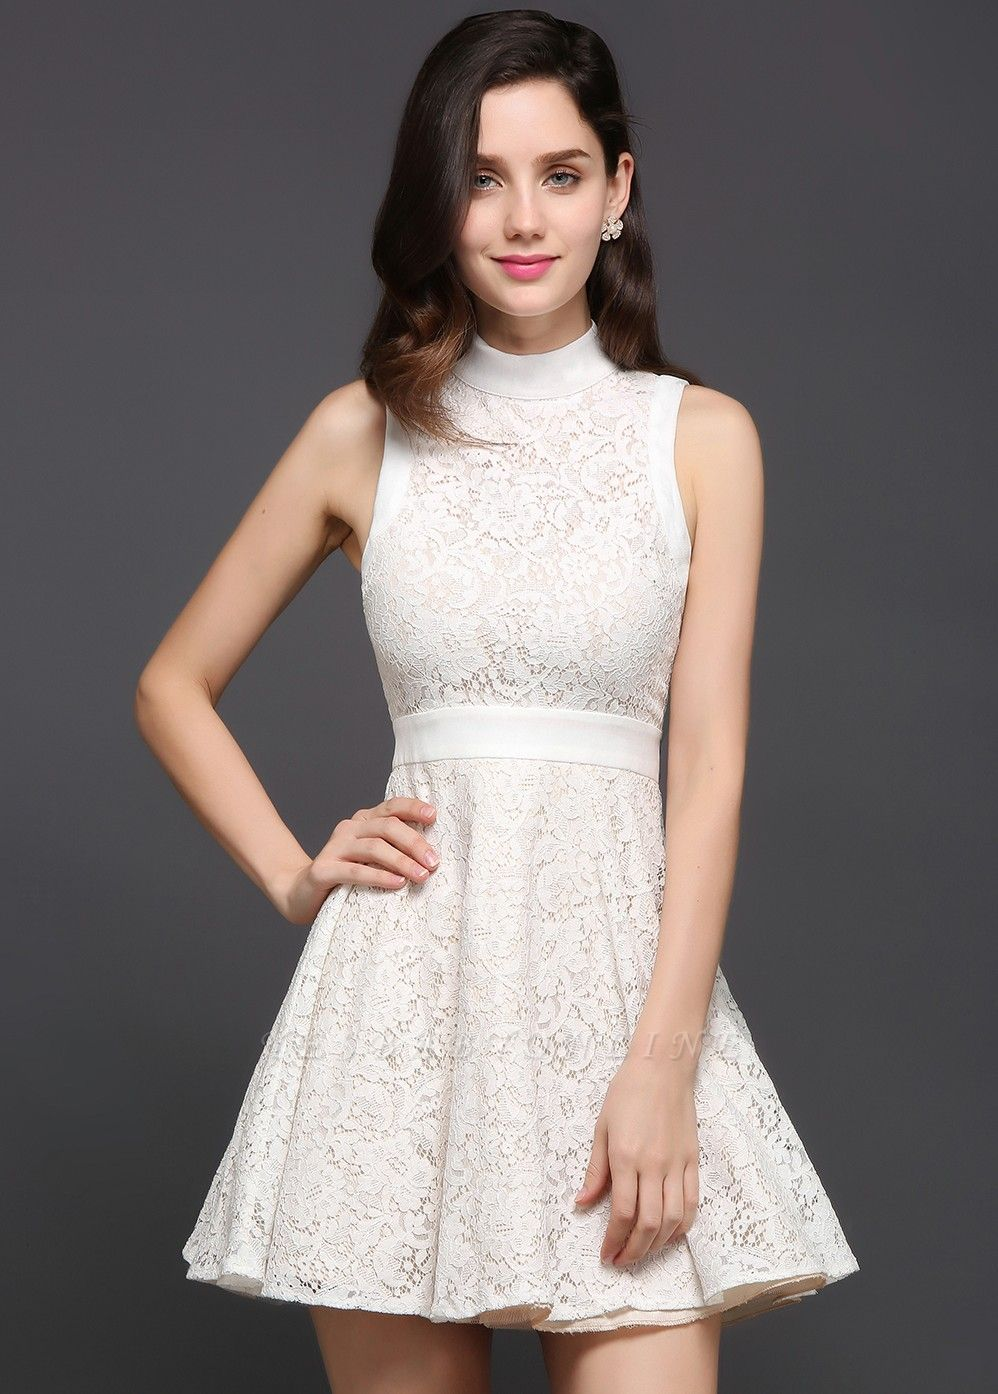 FRANKIE | Jewel White Lace Short Party Dresses